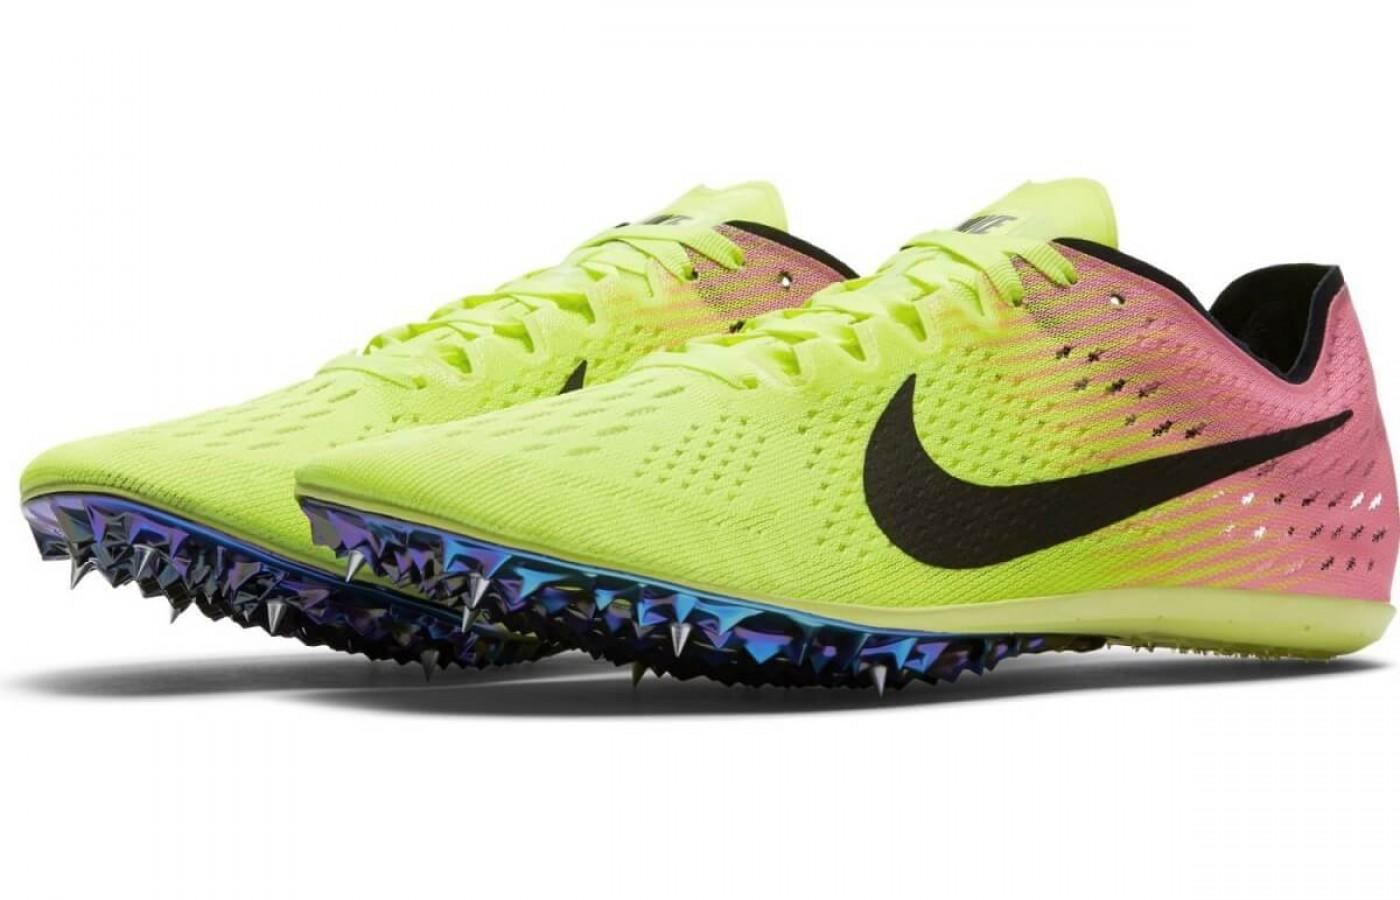 Nike Zoom Victory Elite 2 are unisex shoes